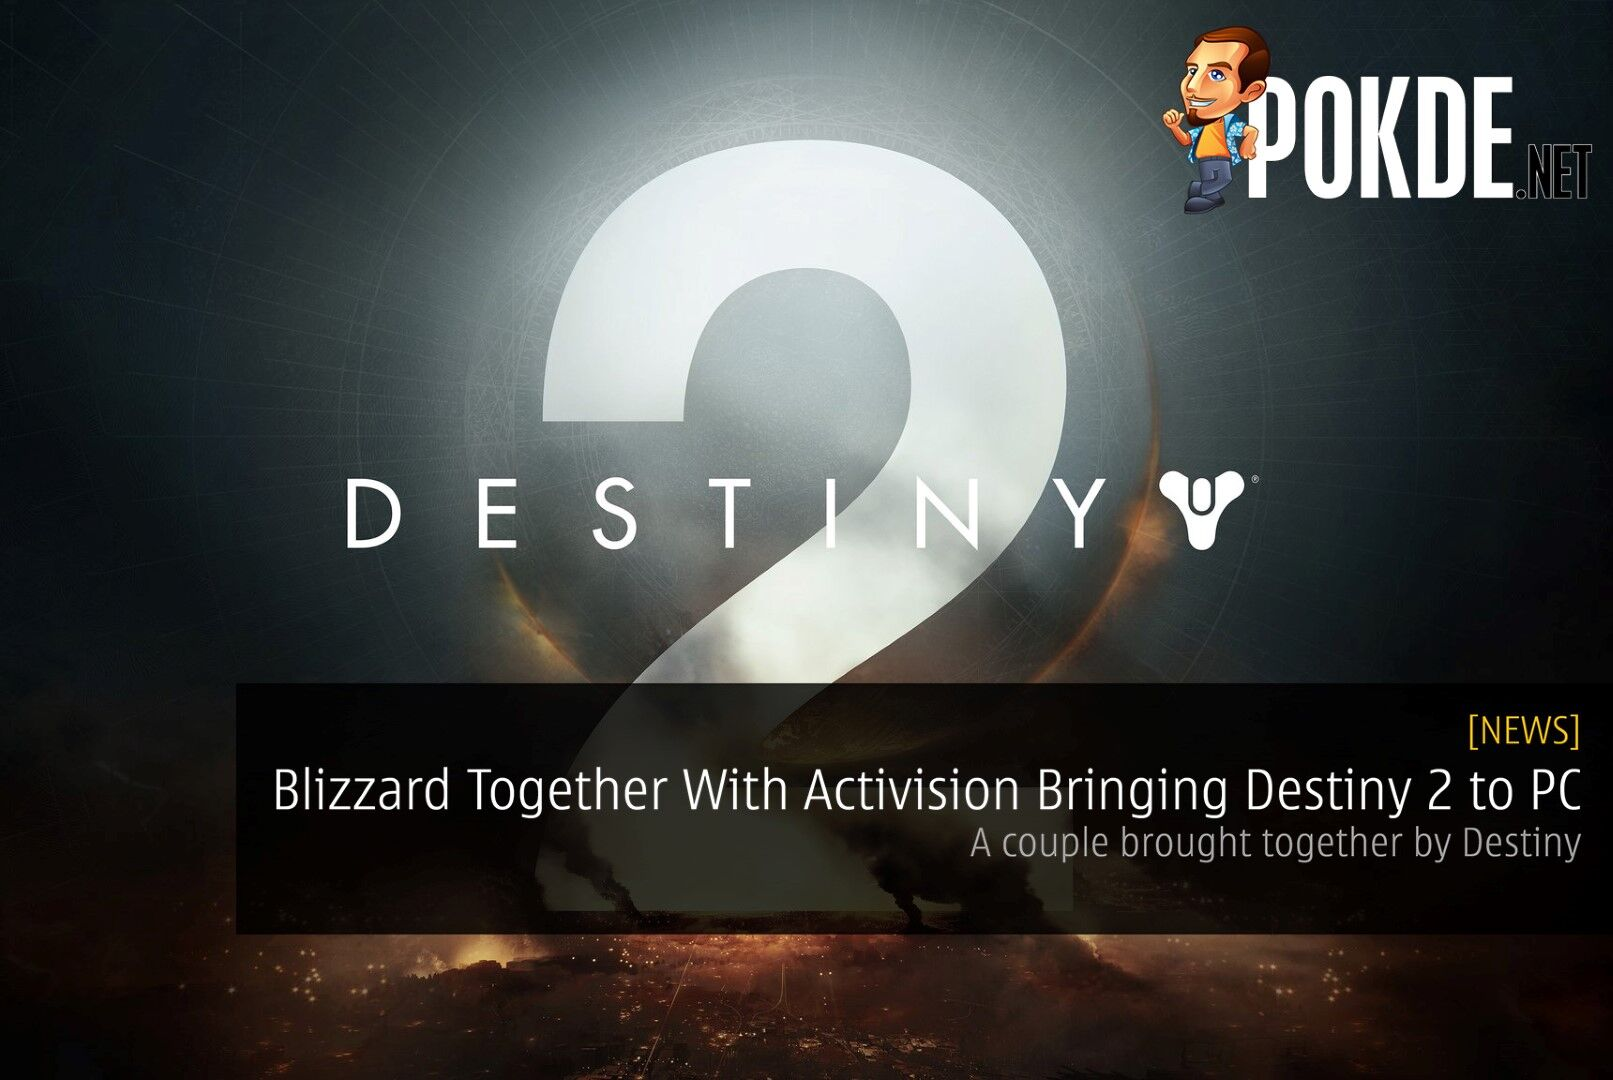 Blizzard Together With Activision Bringing Destiny 2 to PC - A couple brought together by Destiny 41